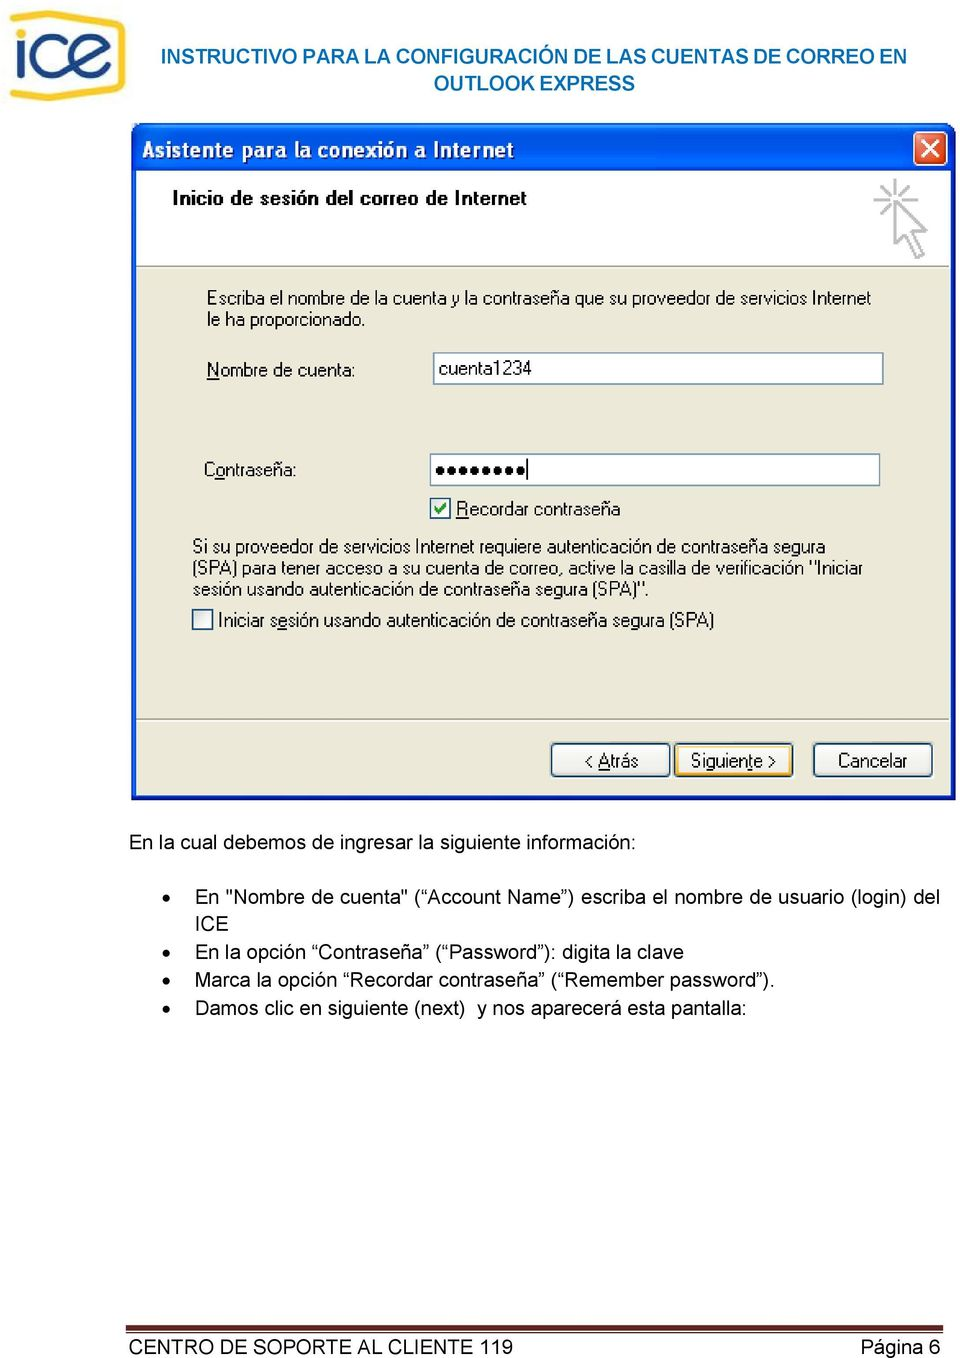 digita la clave Marca la opción Recordar contraseña ( Remember password ).